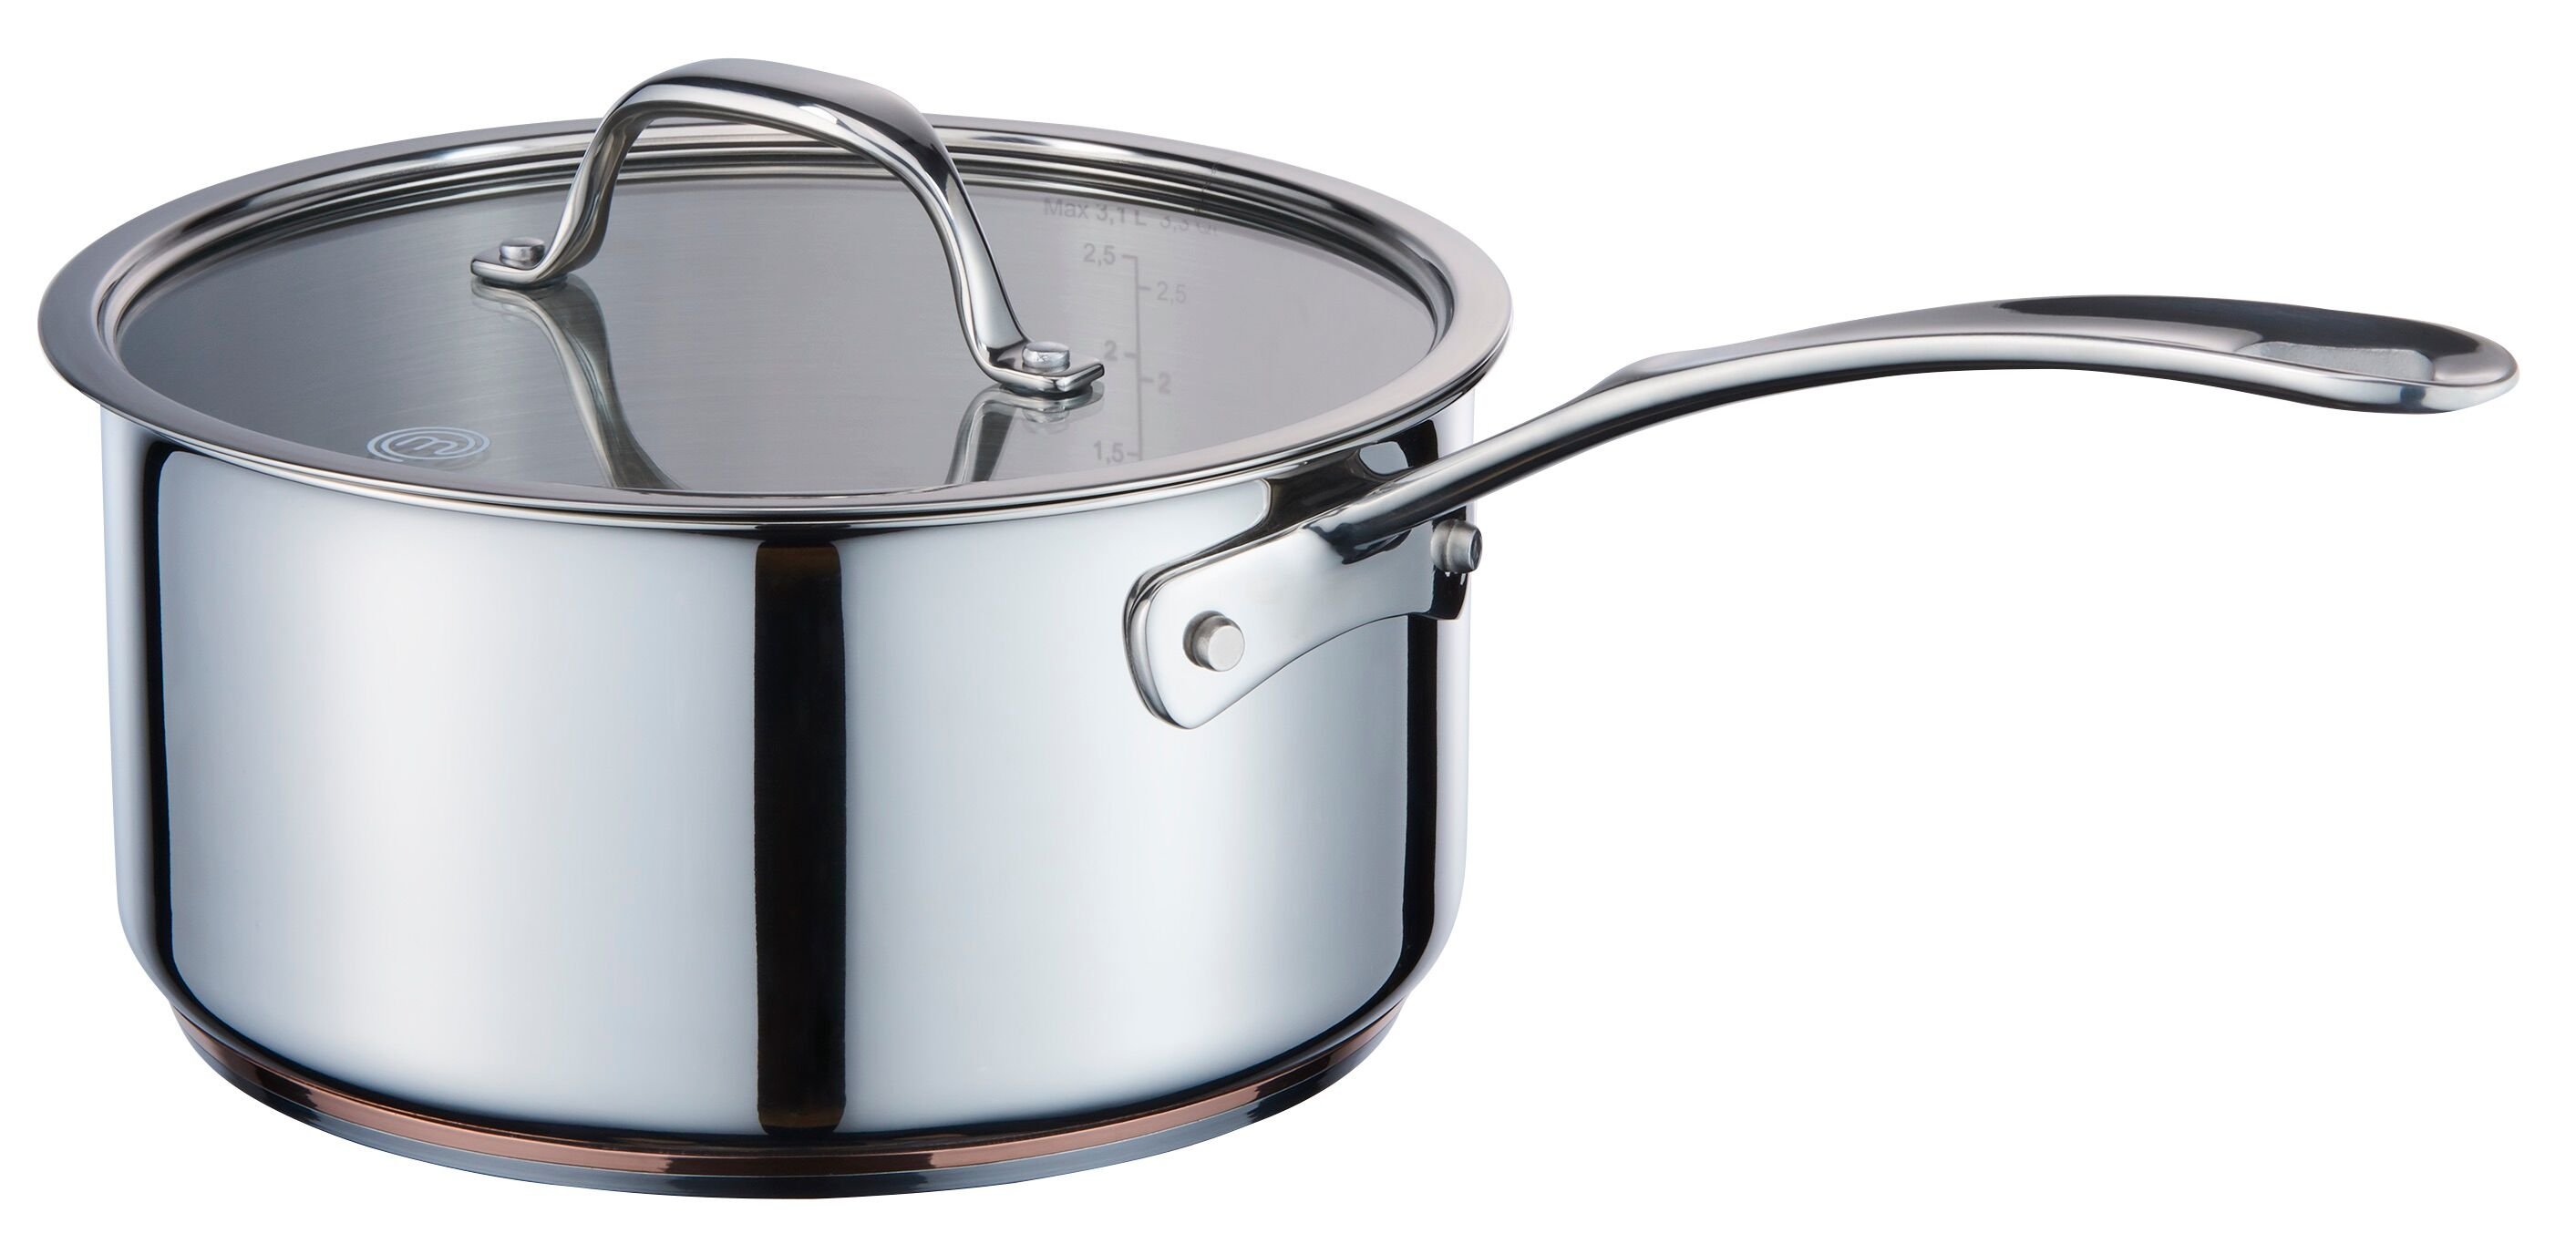 MasterChef Steelpan Copperline Cookware � 20 cm